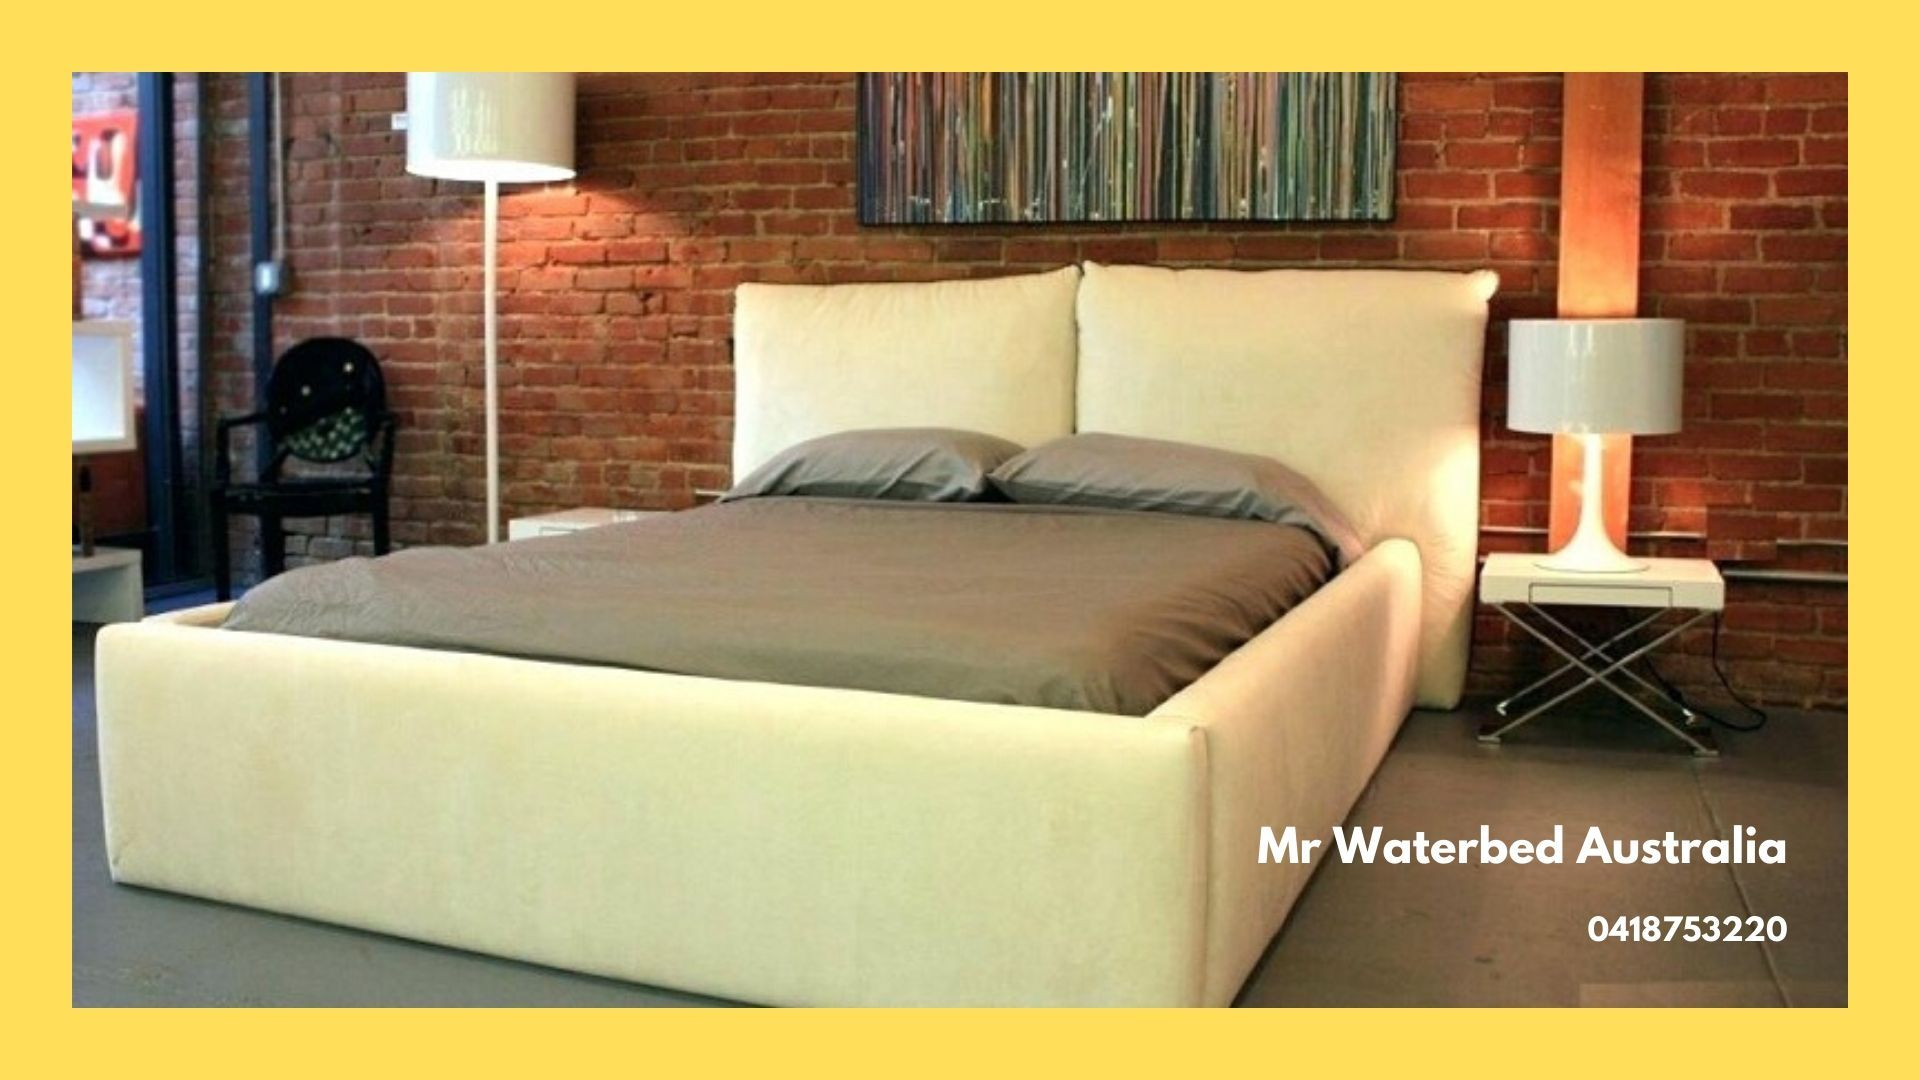 Pin On Mr Waterbed